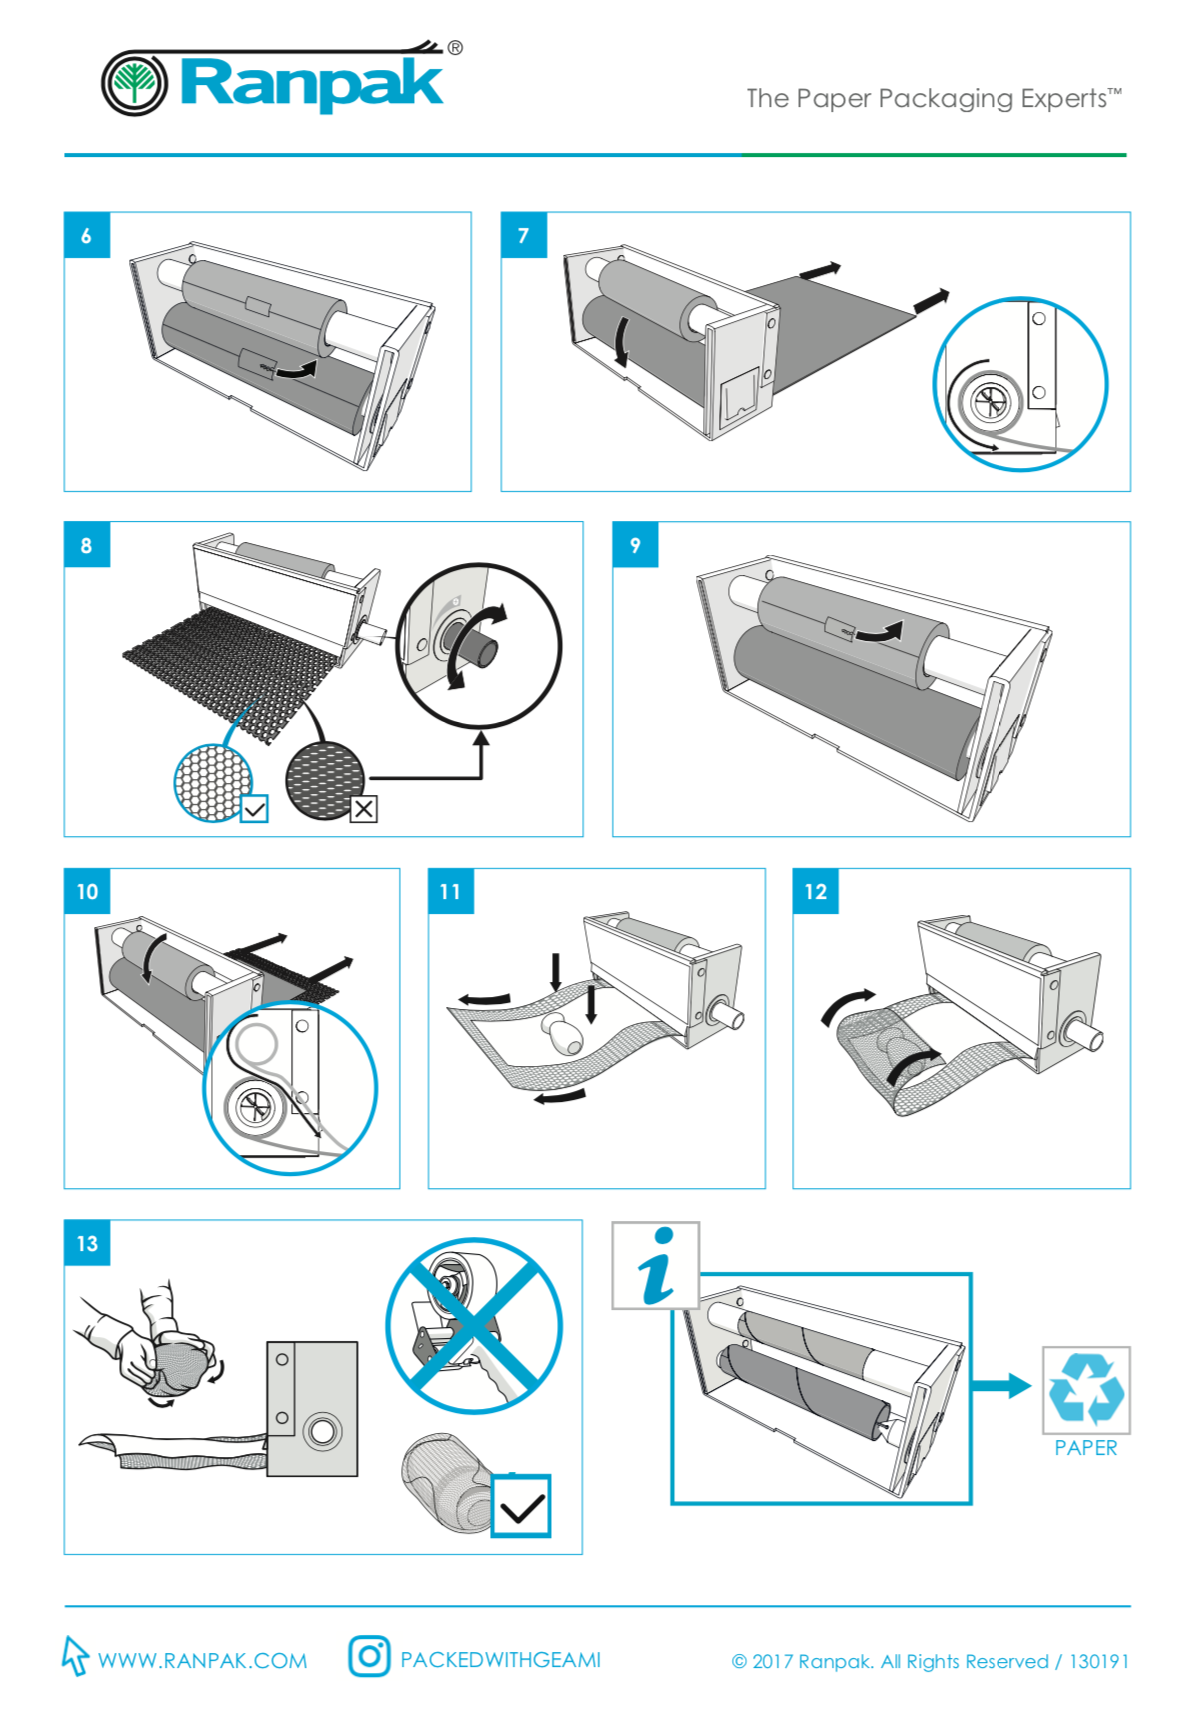 A quick start guide explaining the operation of a packaging machine without any text